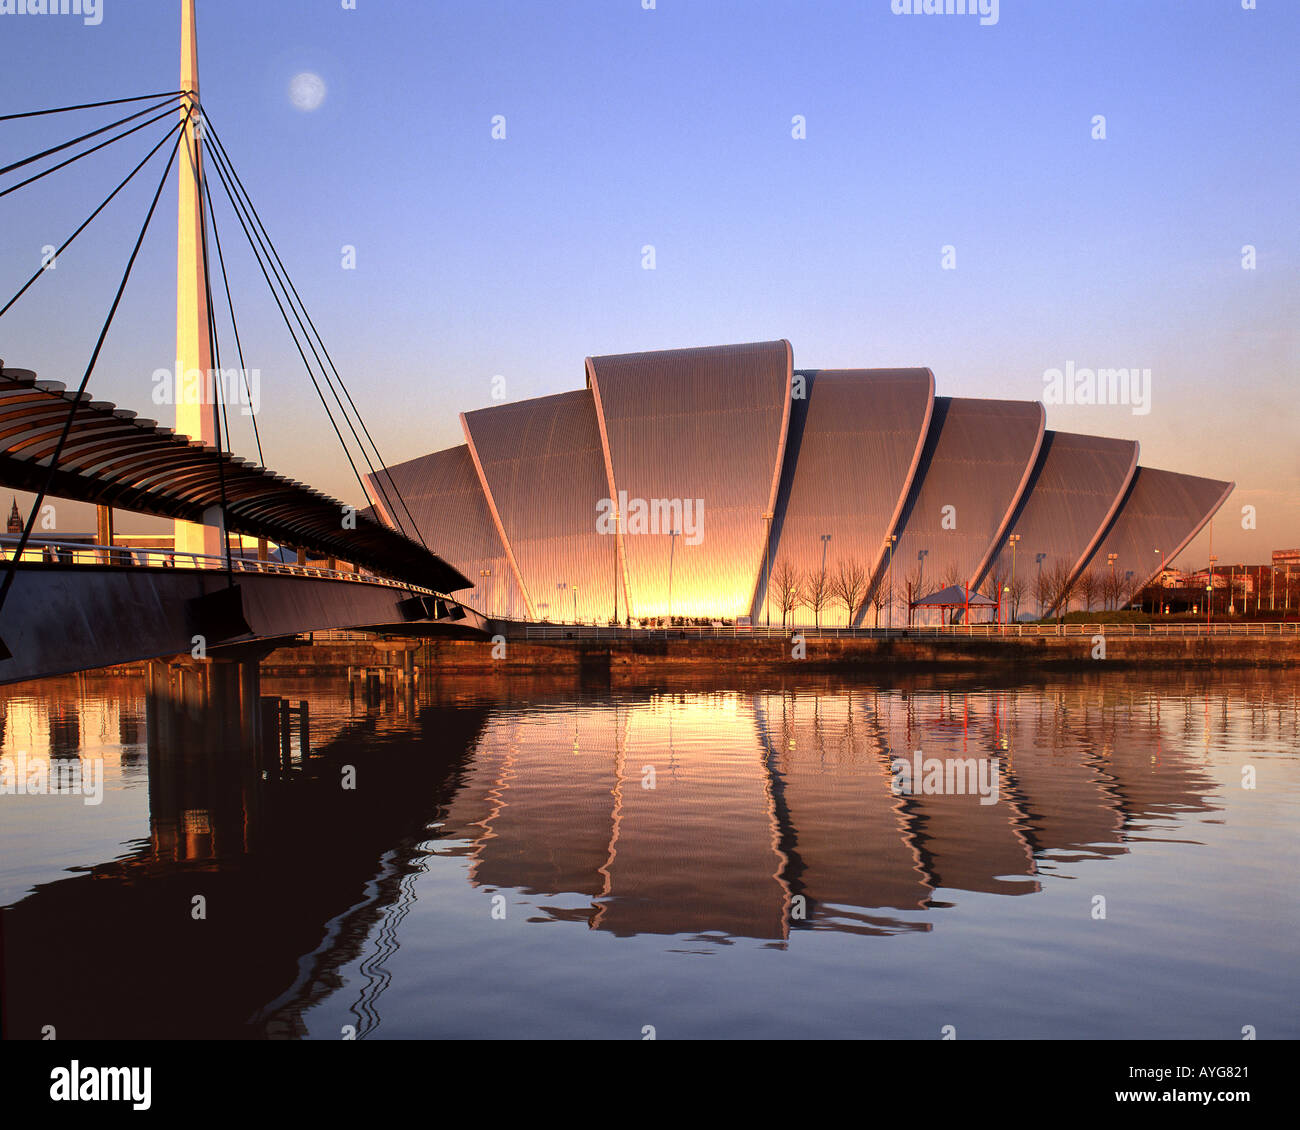 GB - Ecosse : Scottish Exhibition and Conference Centre à Glasgow Photo Stock